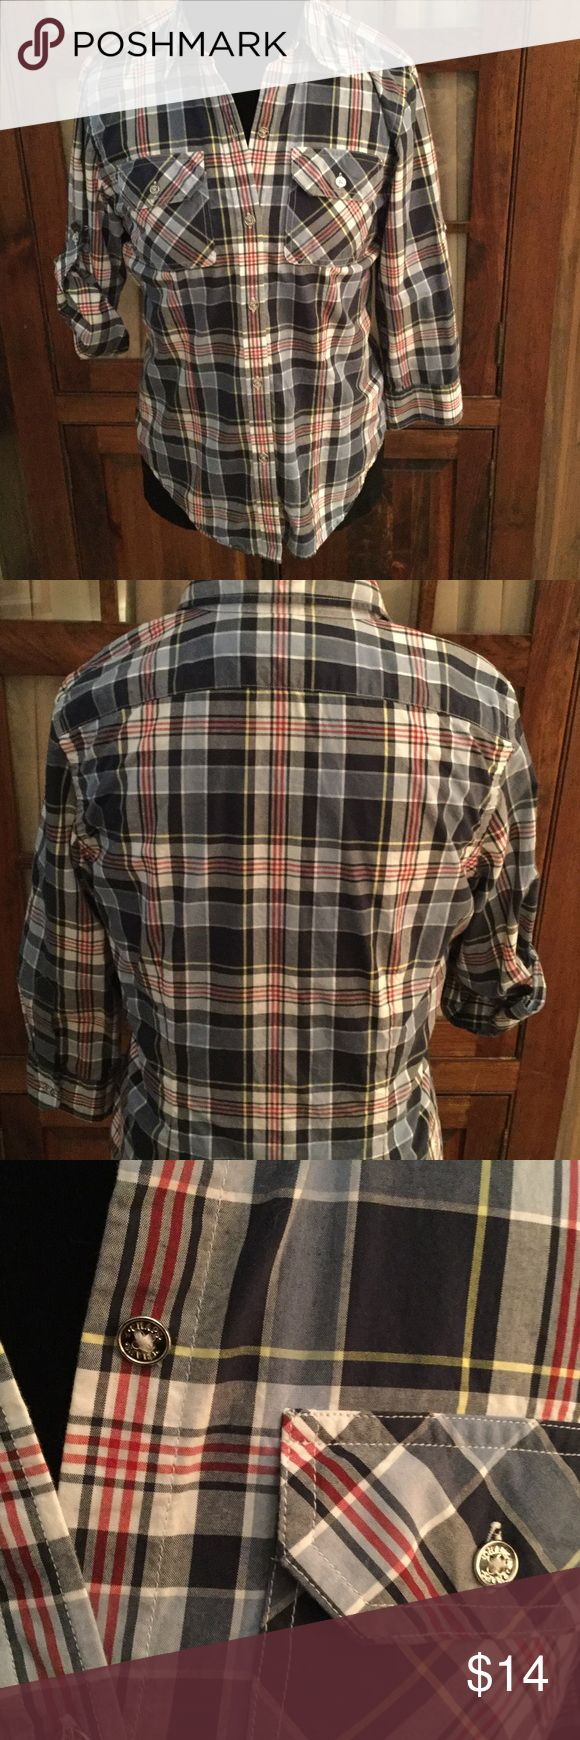 Chaps Shirt Chaps fitted shirt with 3/4 roll up sleeves in a smart looking plaid in navy, red, and white in a soft  cotton material.  Has silver buttons, pockets in the front and darts in the front and back. Chaps Tops Button Down Shirts